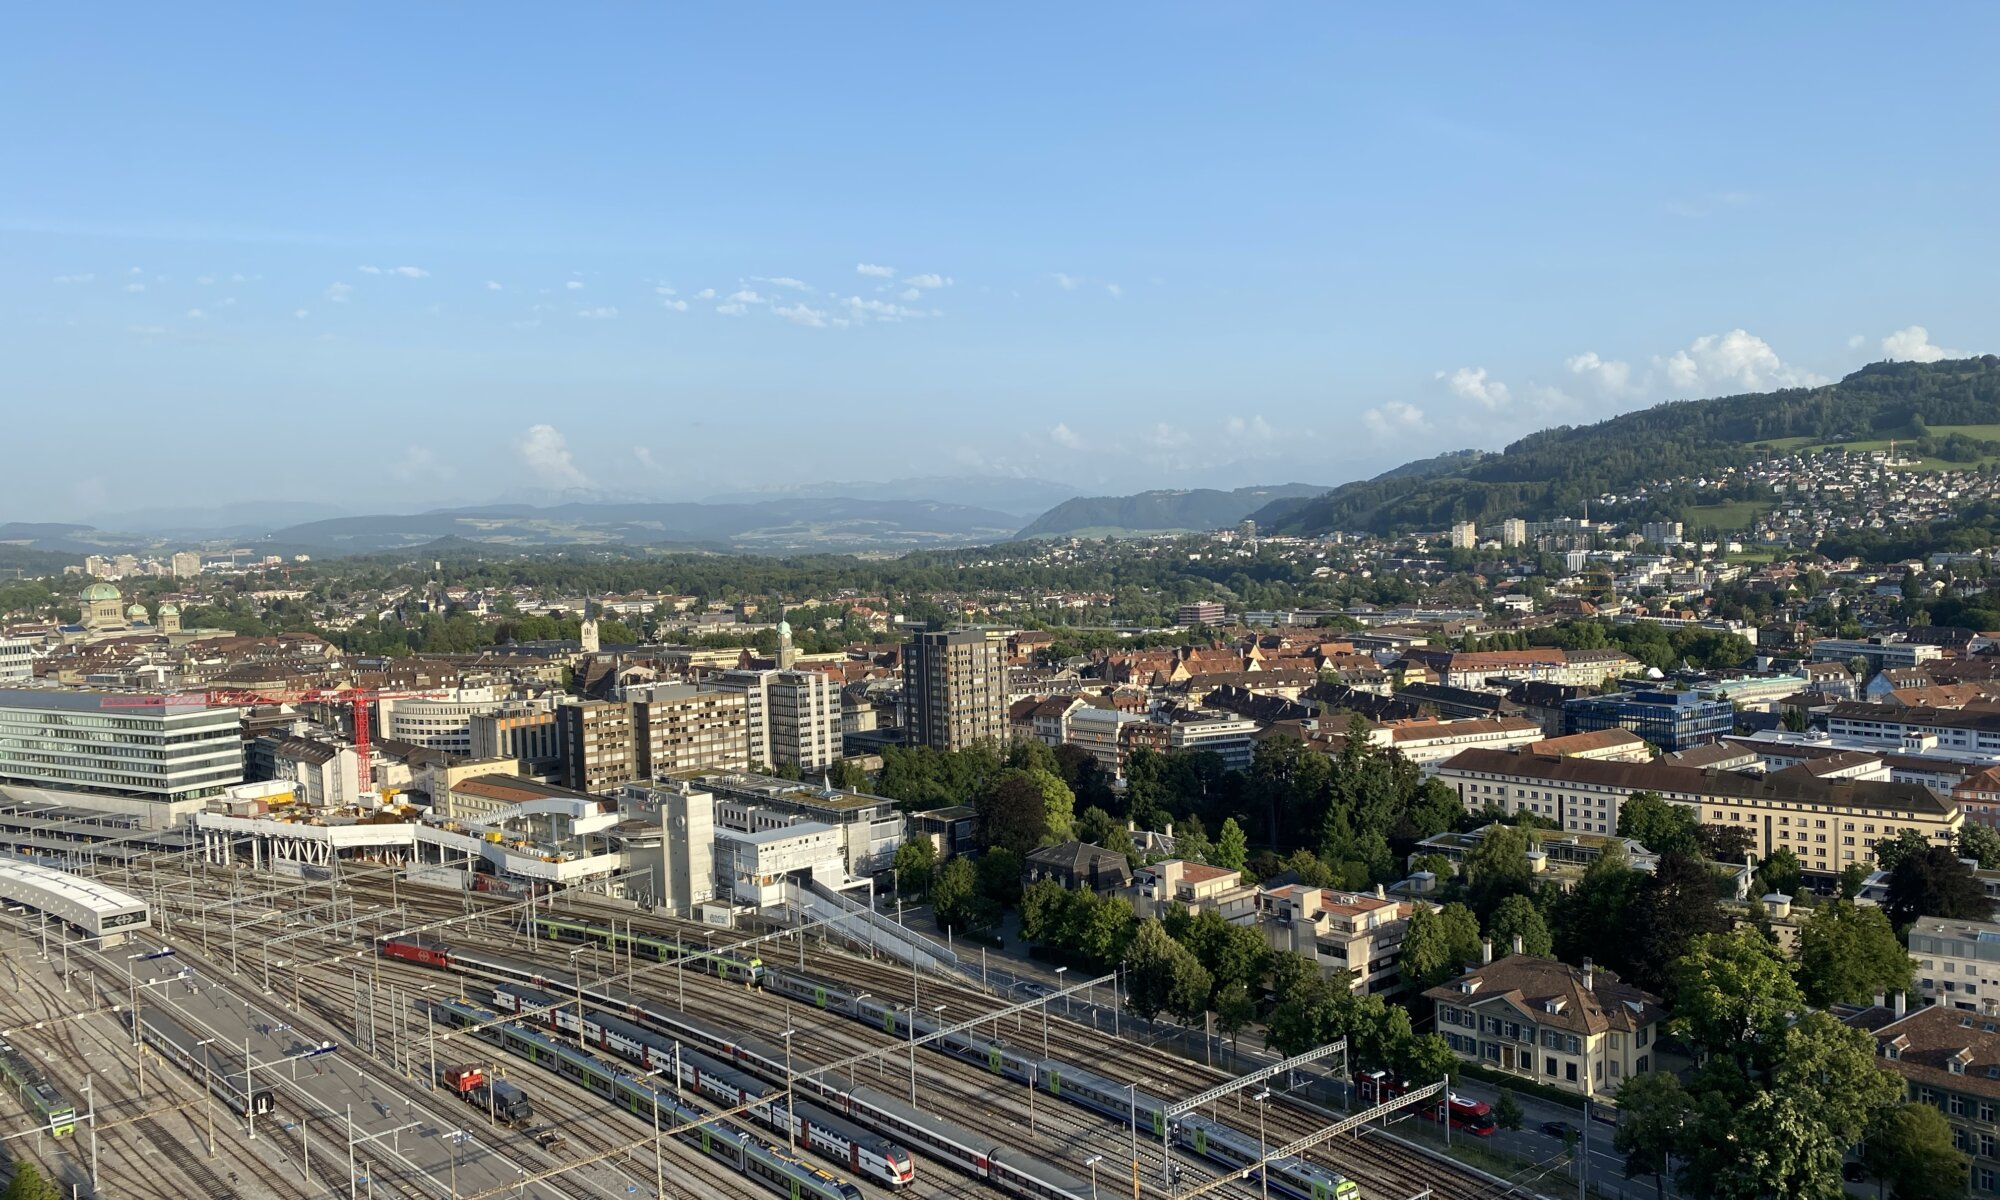 View from PinkLime, Bern